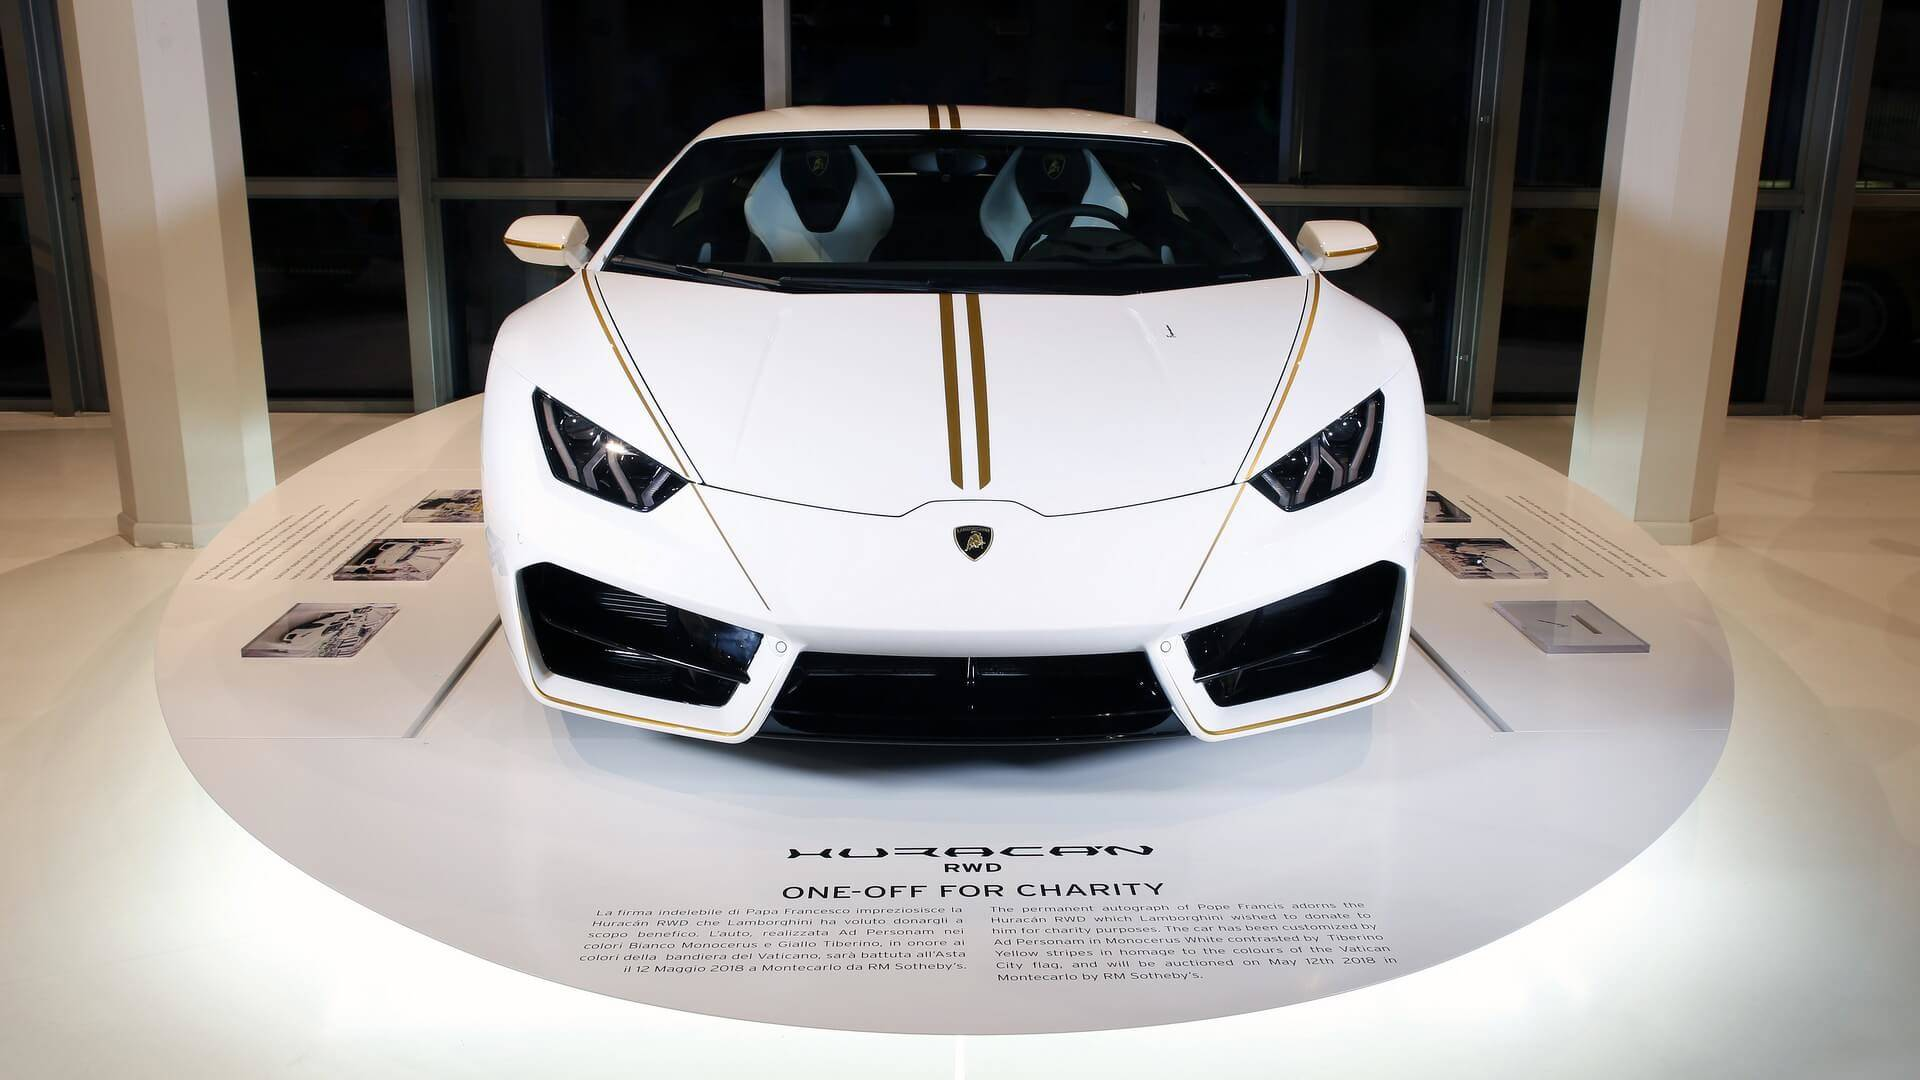 8 Ticket Could Win You Huracan Blessed By Pope Francis